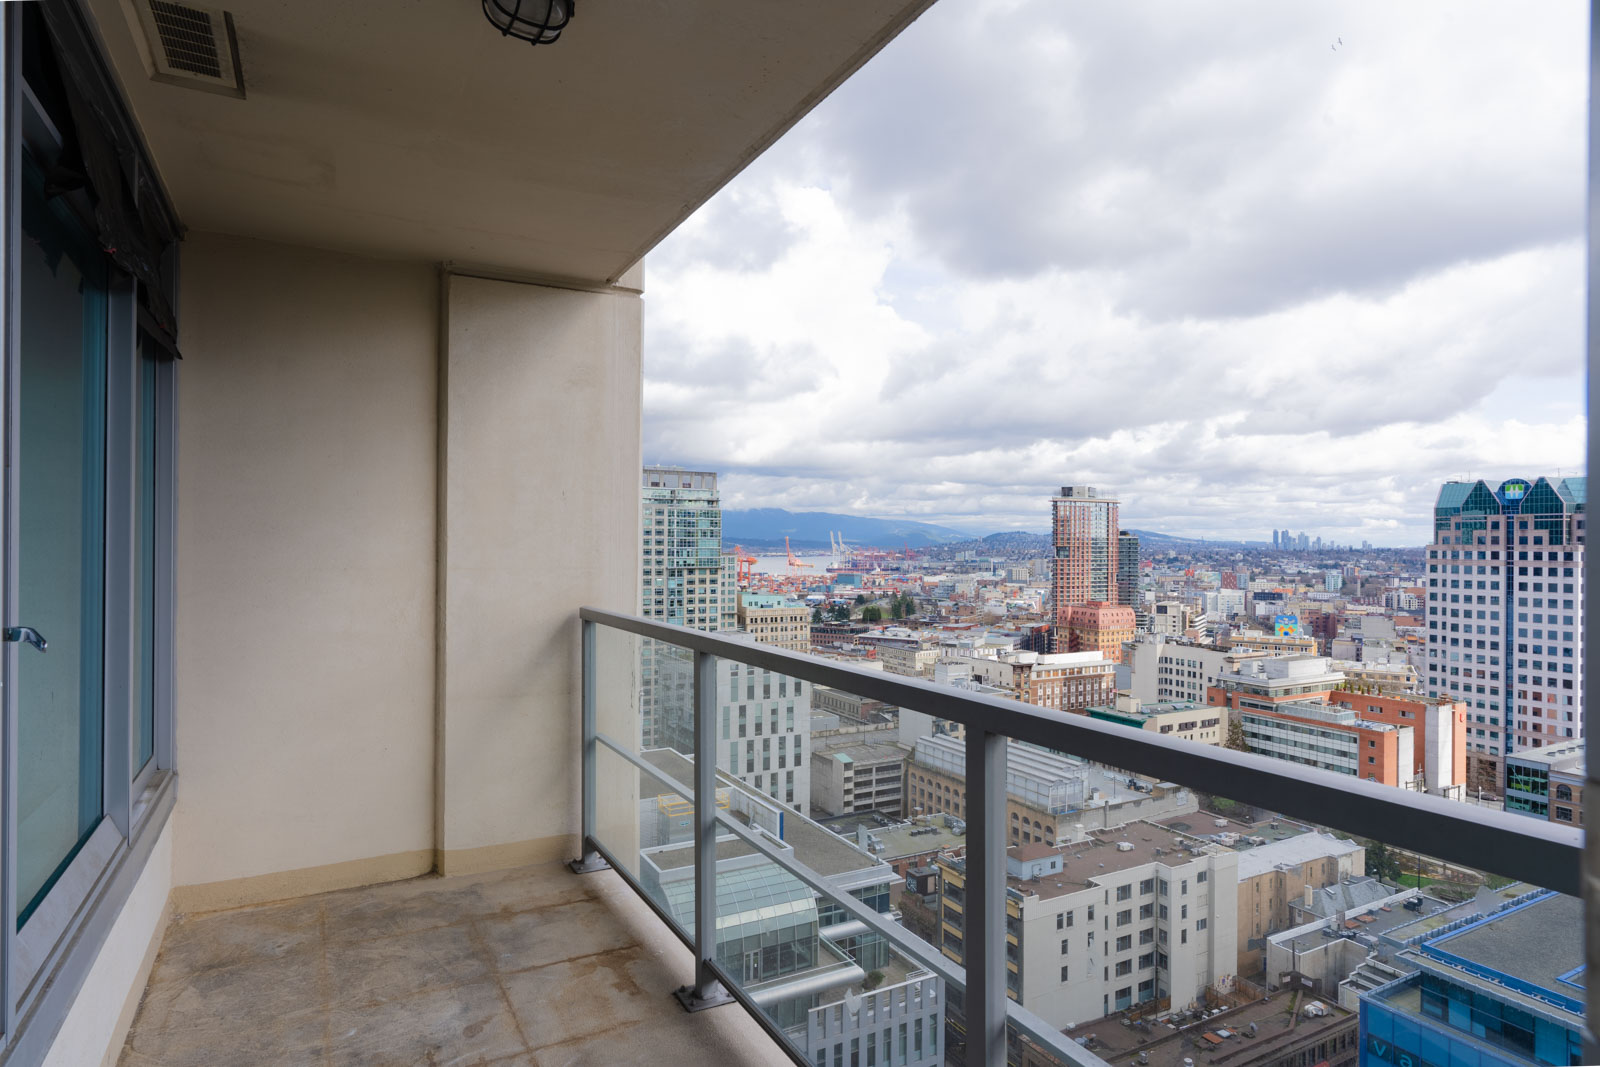 Balcony with view of downtown Vancouver